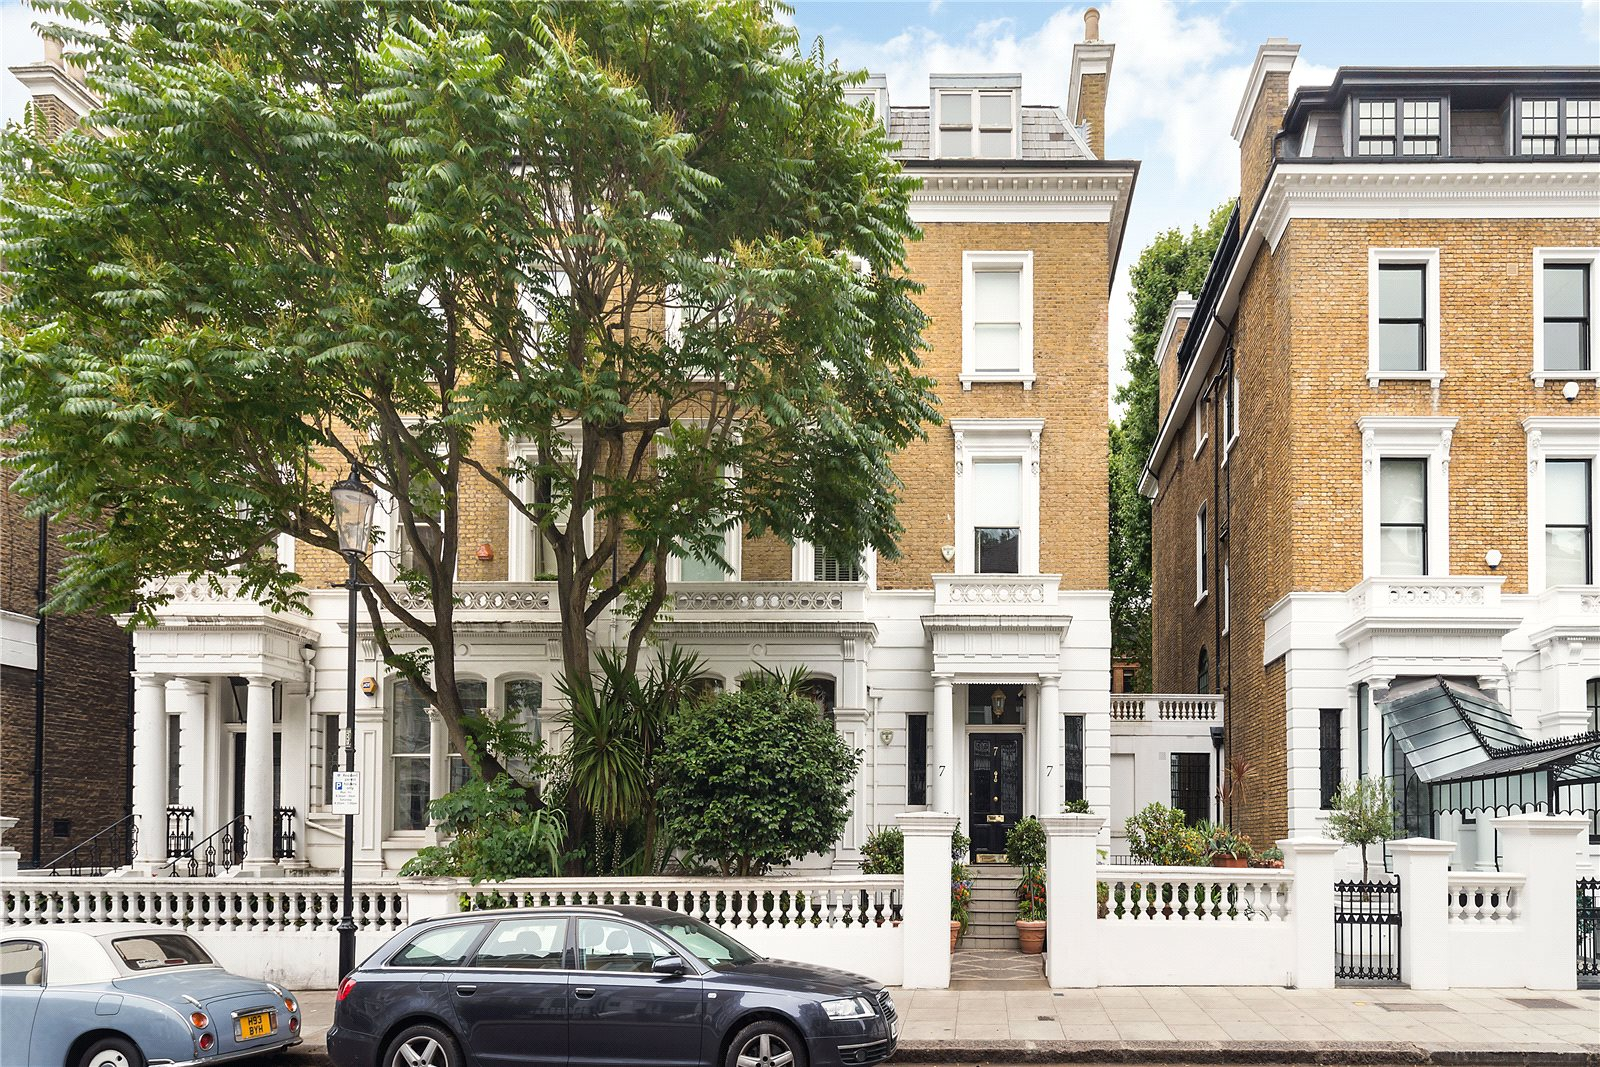 Additional photo for property listing at Wetherby Gardens, South Kensington, London, SW5 South Kensington, London, 英格兰